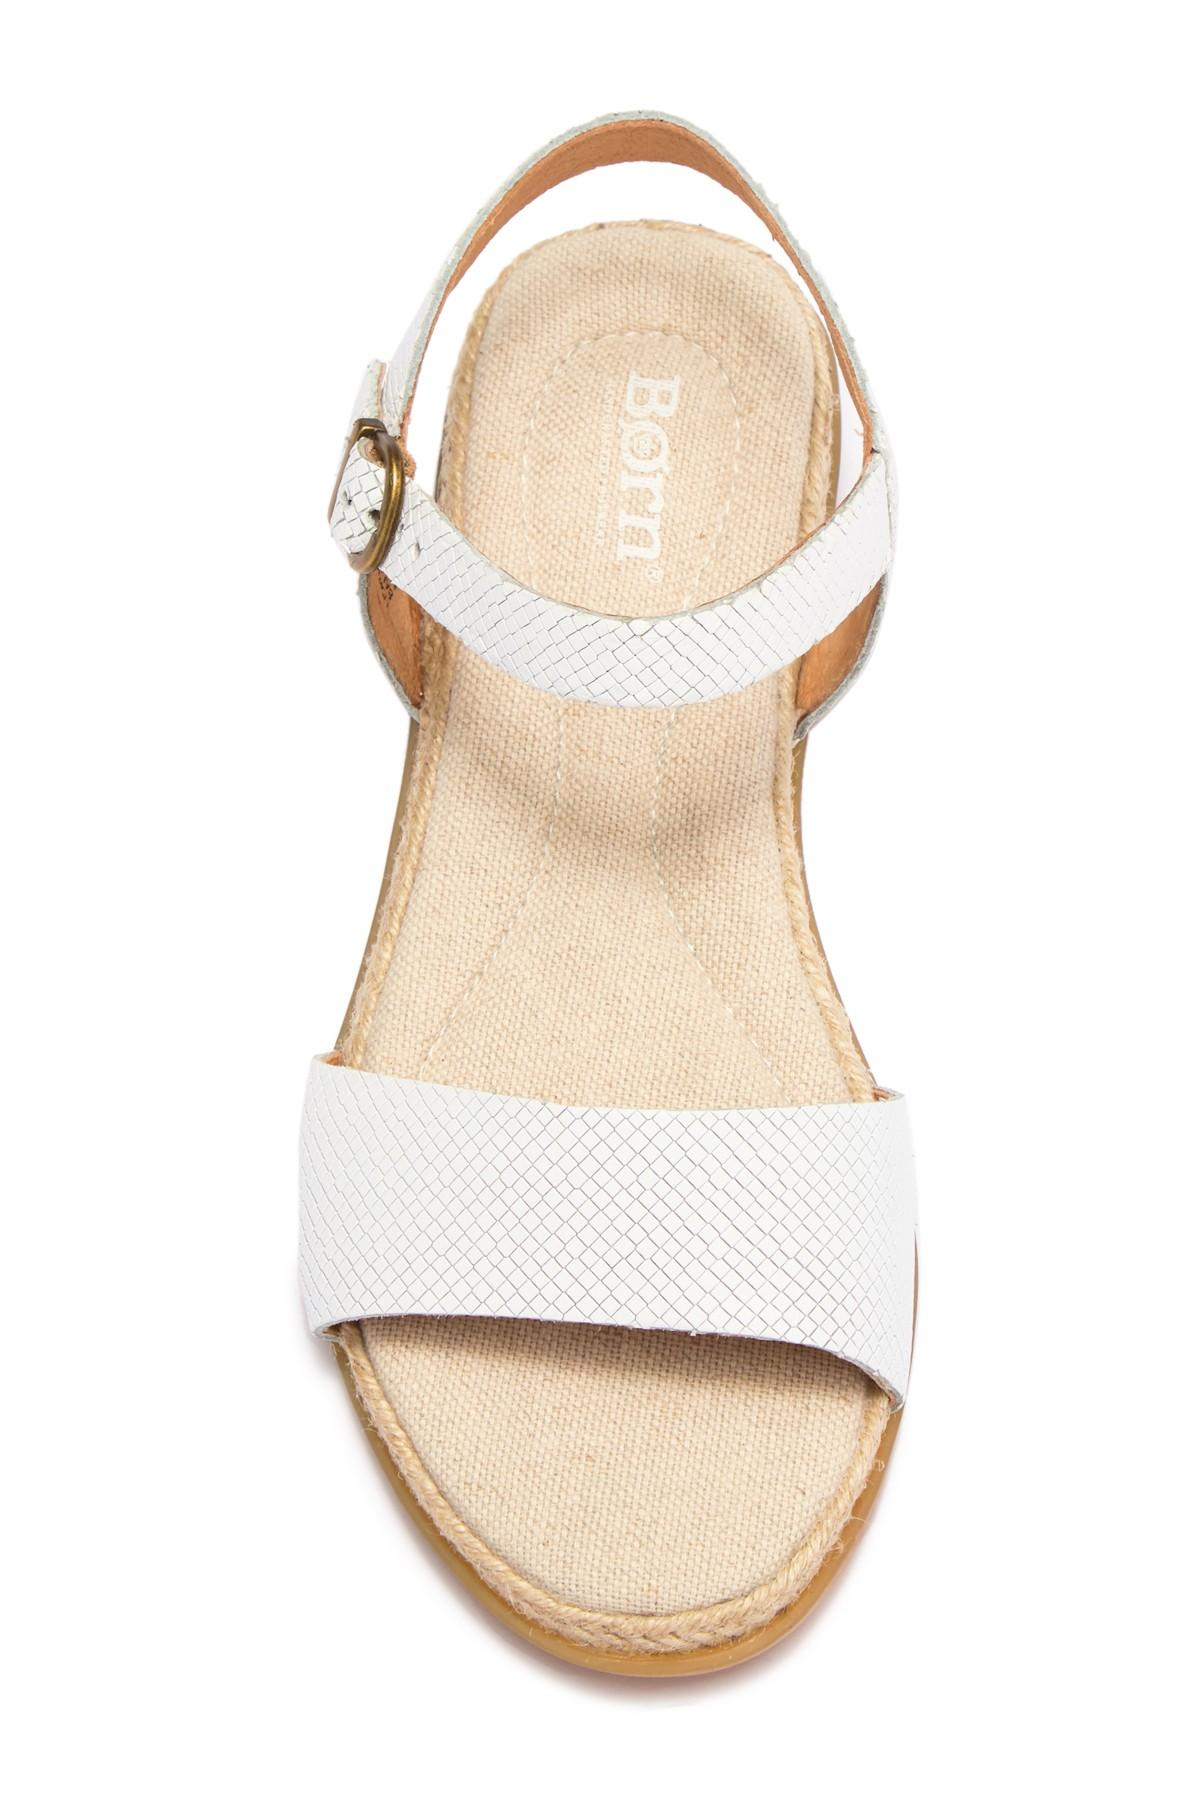 fcf86fbfb706 Lyst - Born B rn Welch Sandal (women) in White